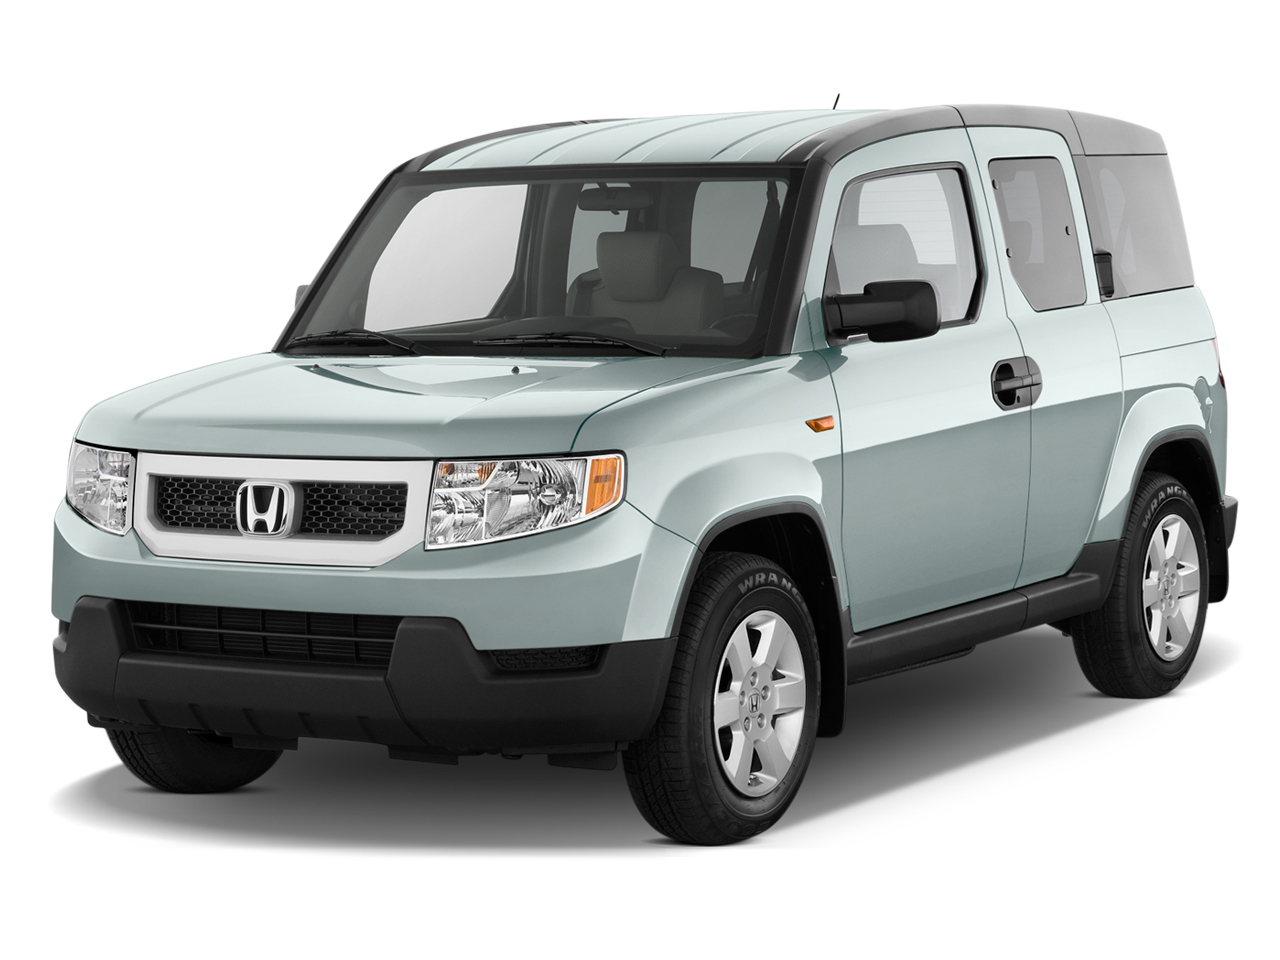 Saturn Vue For Sale >> New and Used Honda Element: Prices, Photos, Reviews, Specs ...